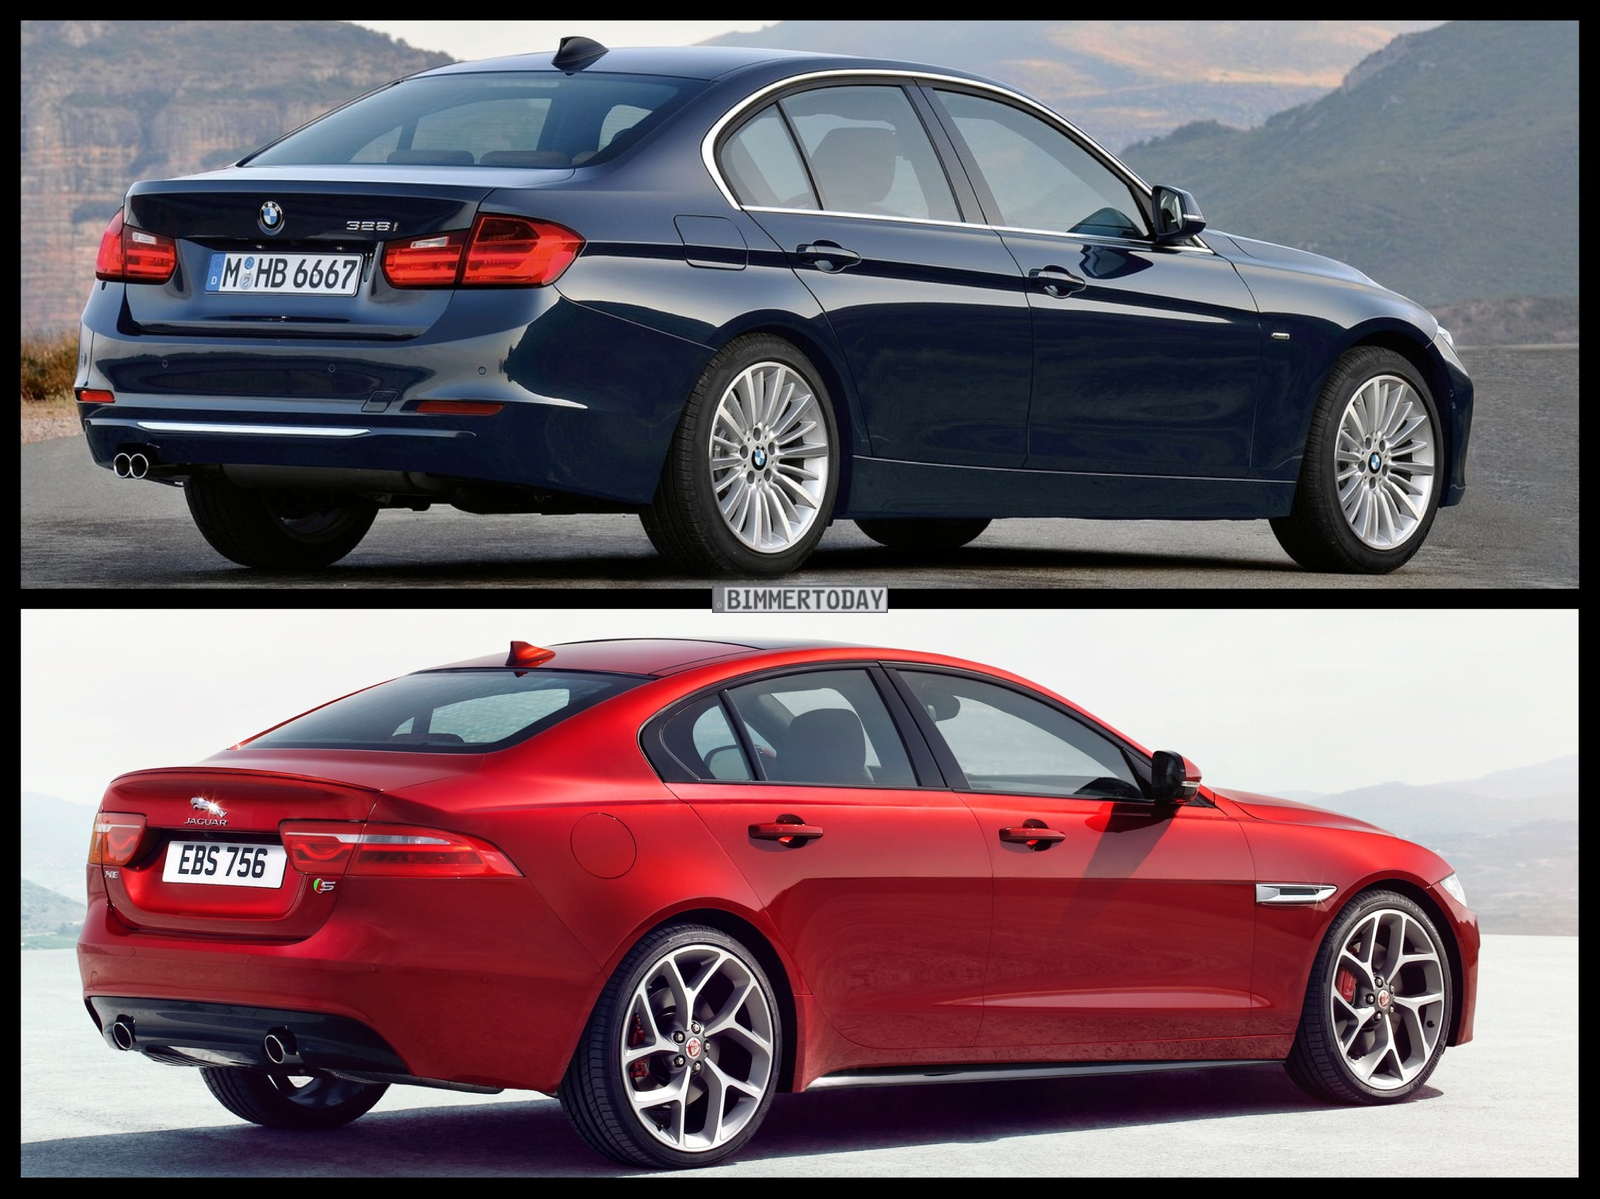 Jaguar Xe Vs Bmw 3 Series Photo Comparison